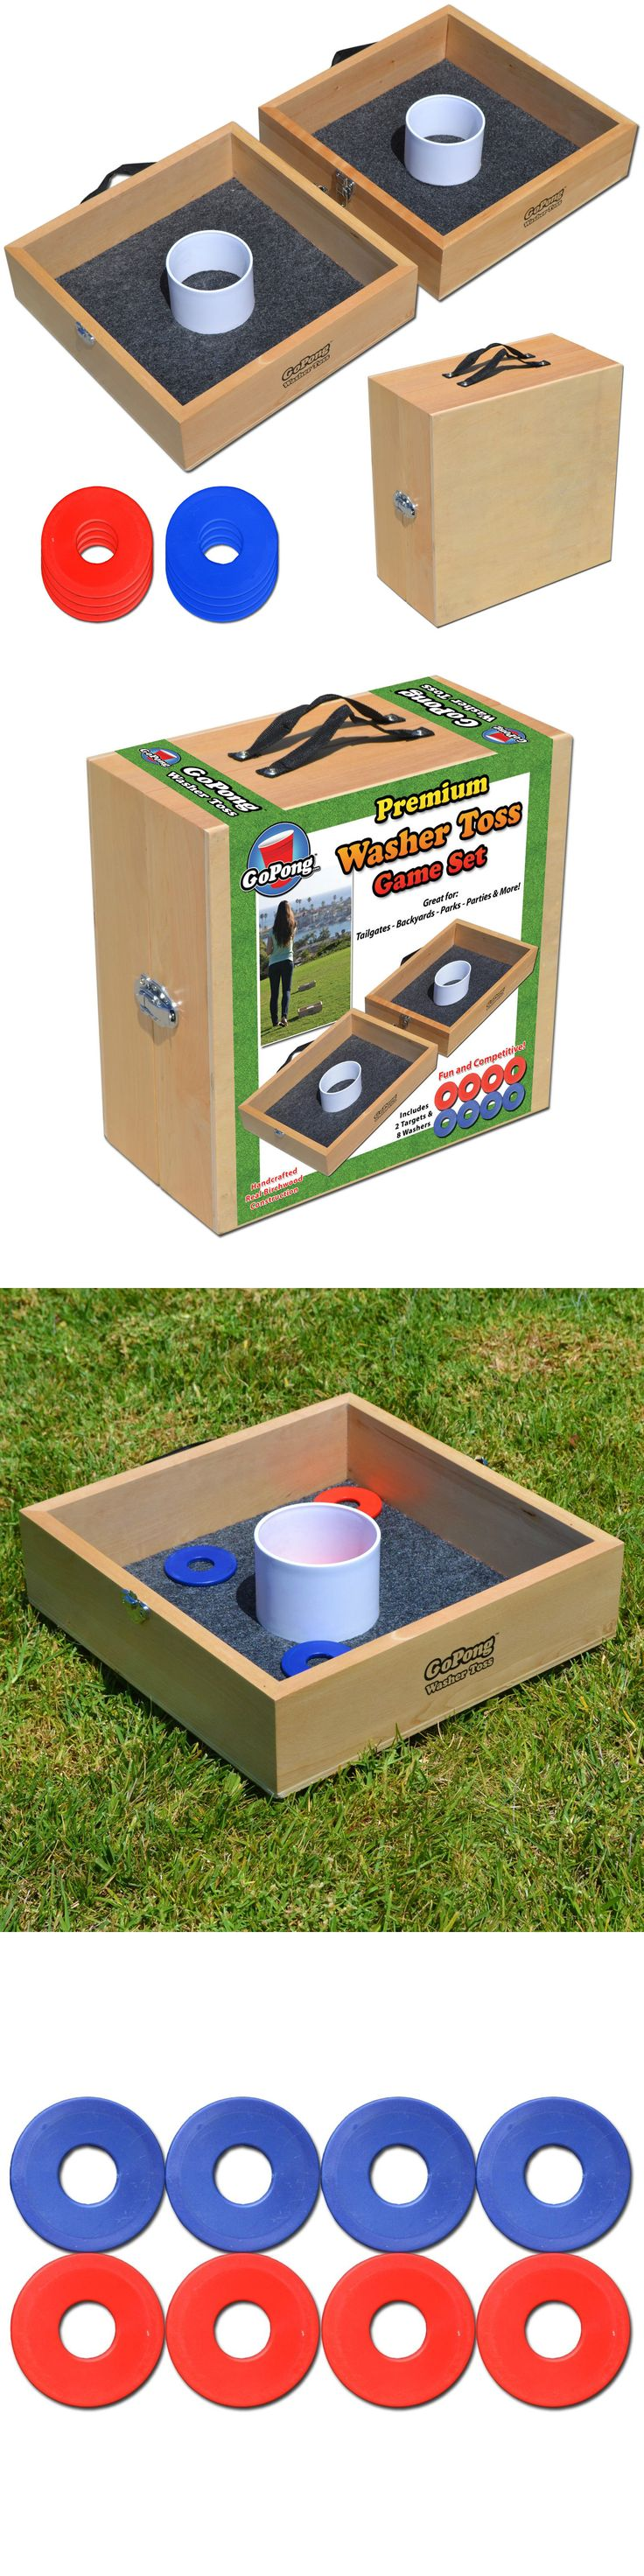 other backyard games gosports premium wood washer toss game 2 washer boxes